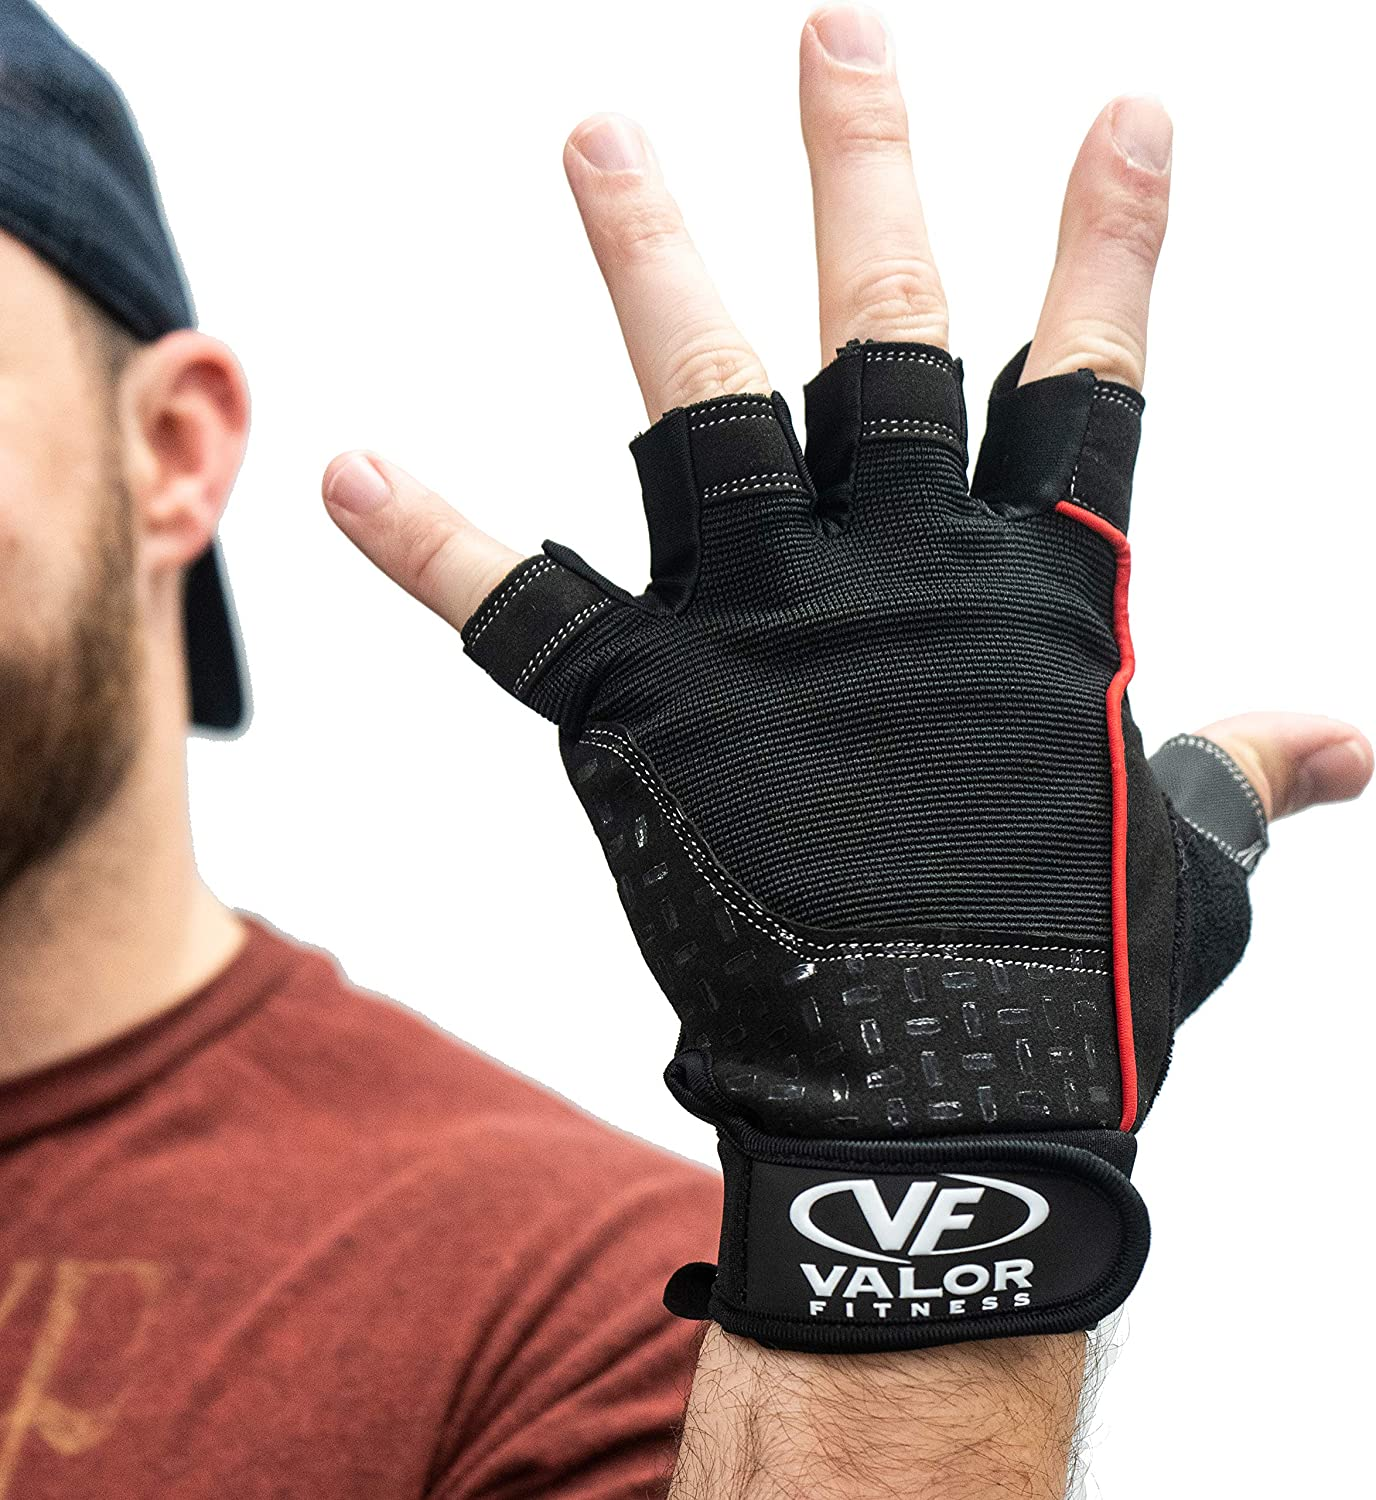 Fitness Weight Lifting Gym Gloves Fitness bodybuilding Workout Gloves for men